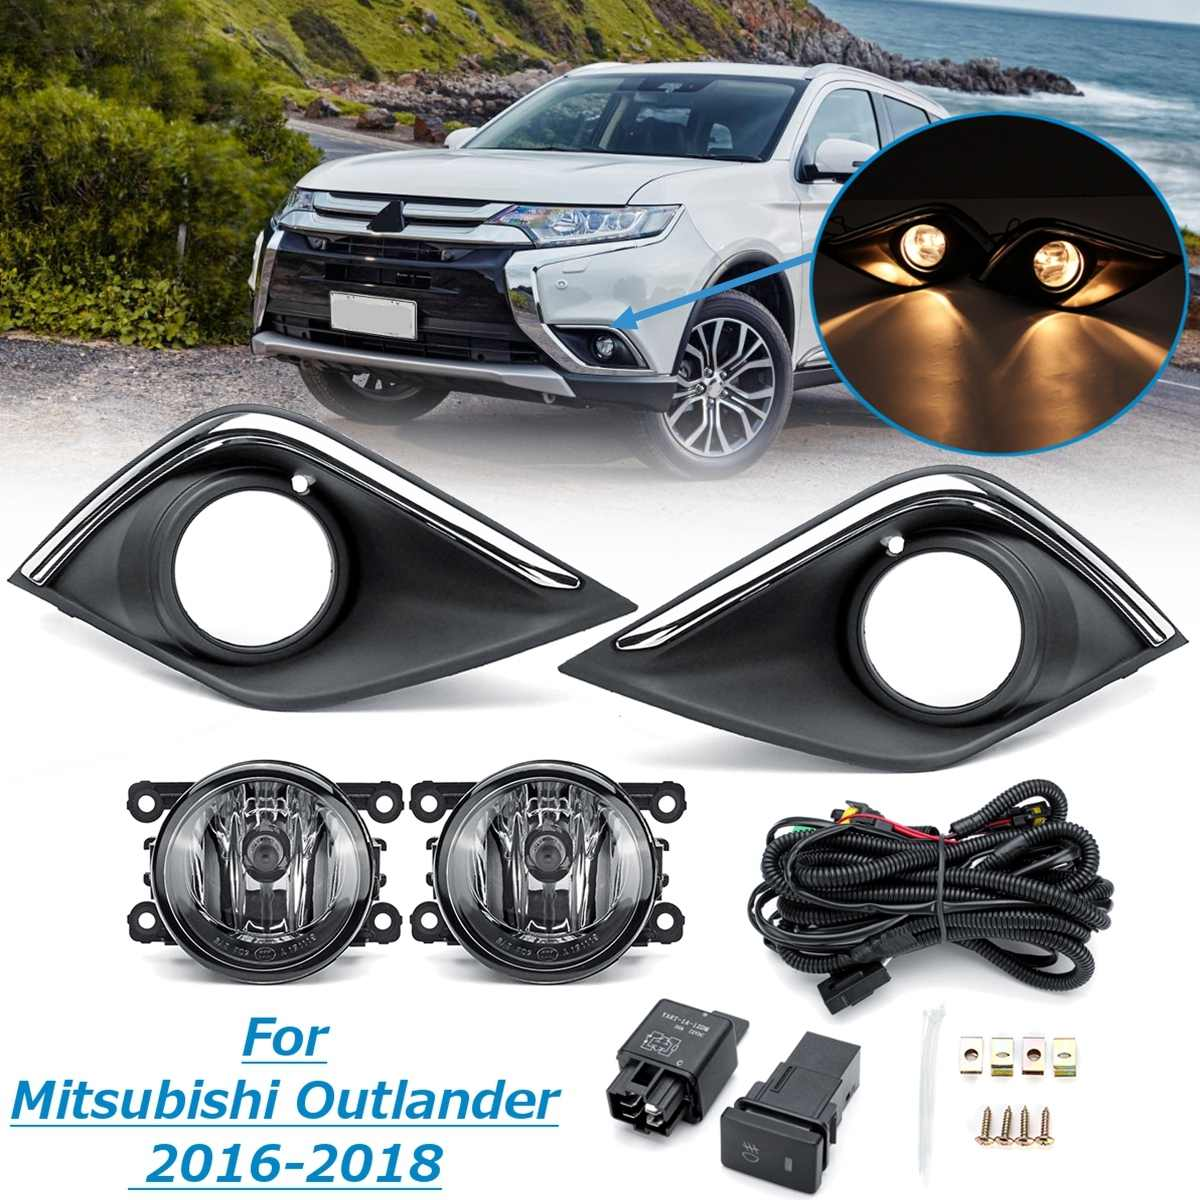 1pc Stainless Bumper Lower Grille Trim Cover o For MITSUBISHI OUTLANDER 2016-18